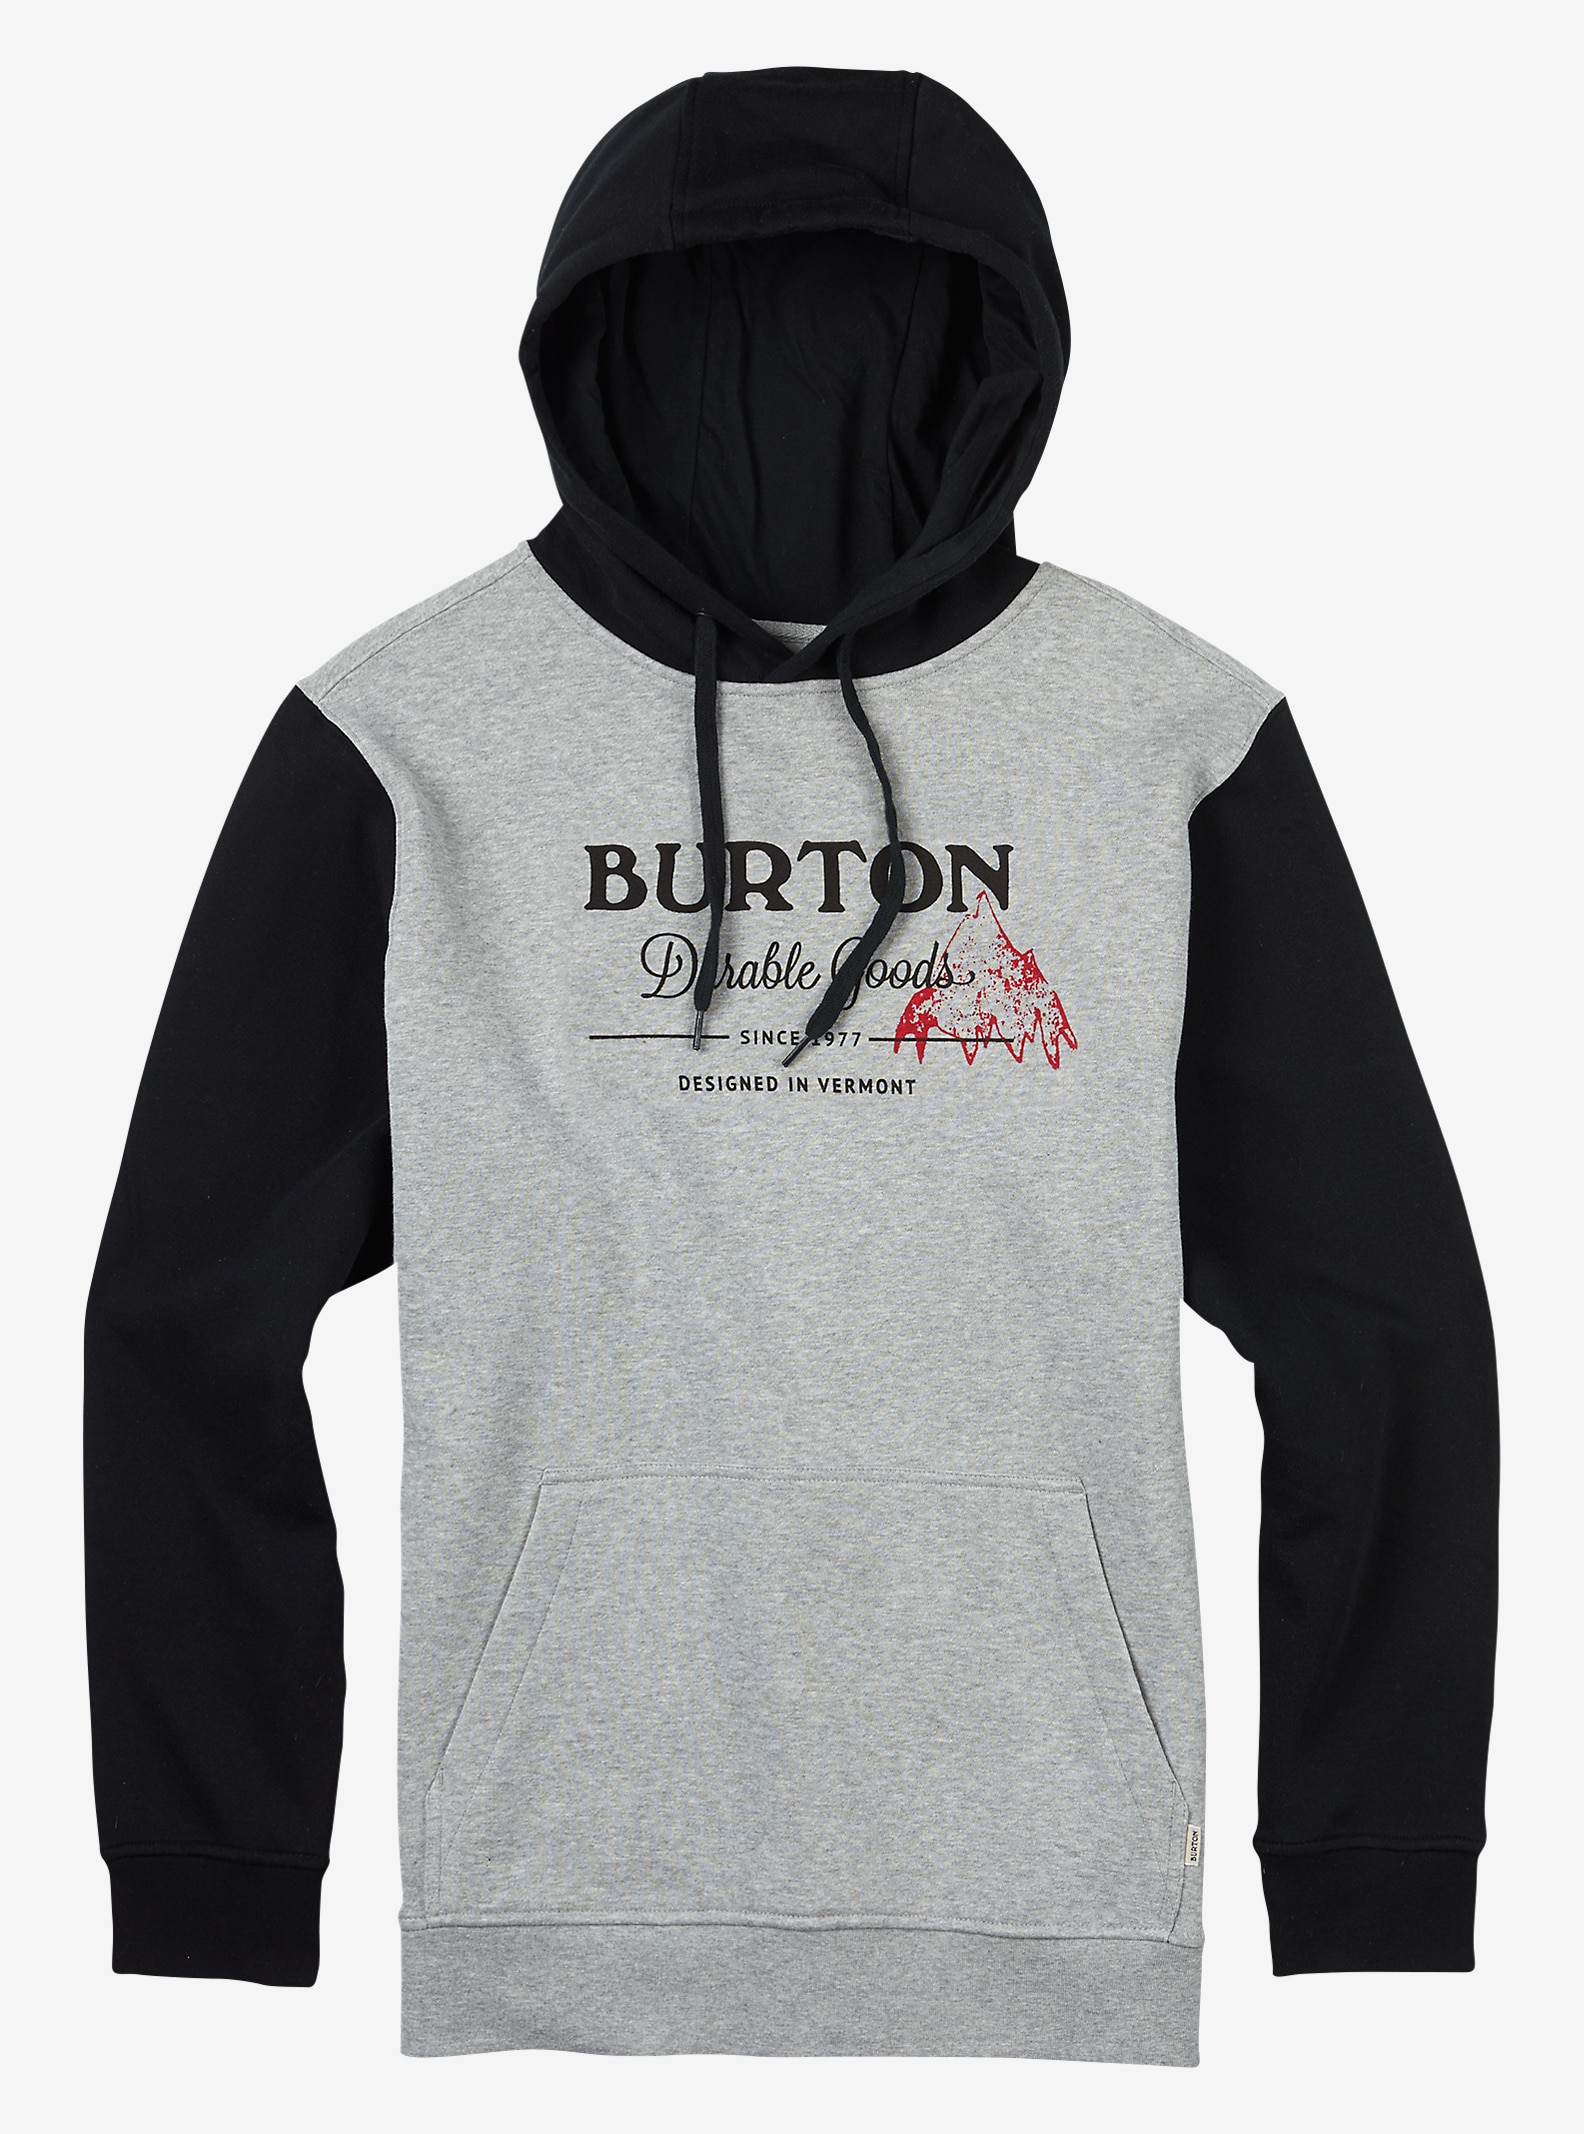 Burton Durable Goods Pullover Hoodie shown in Gray Heather